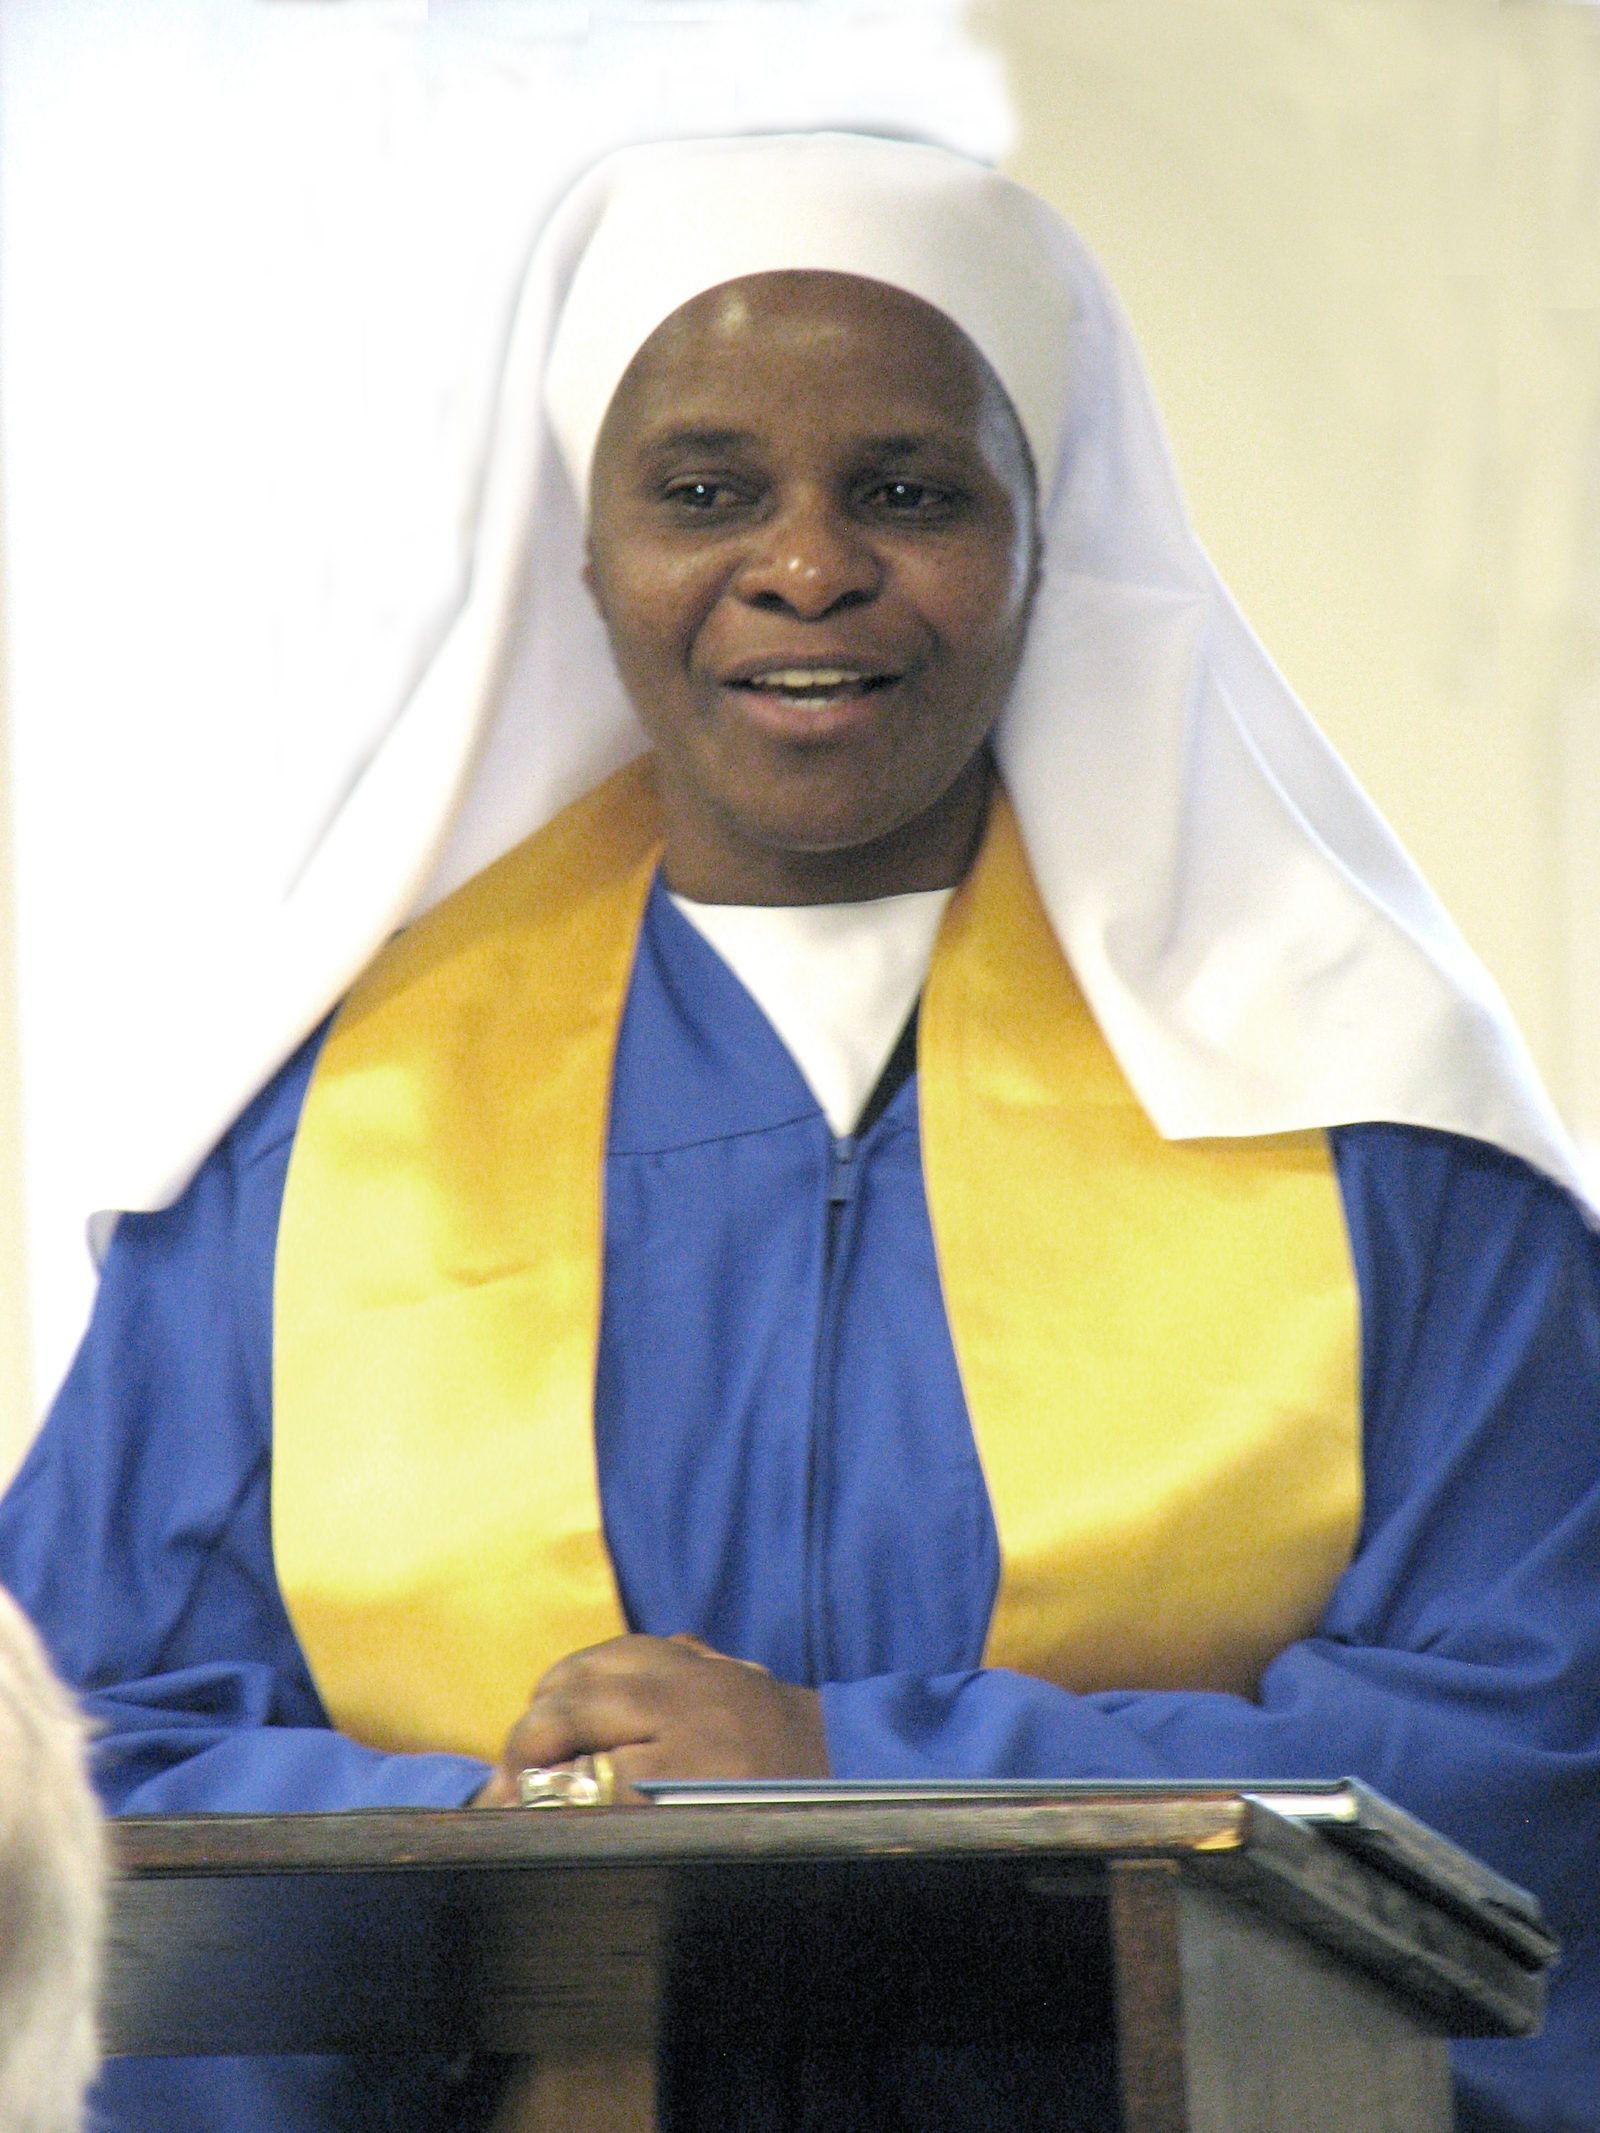 After Sister Gaudensia Mwanyika graduated from college, she returned home to Tanzania and built a school for children north of Dar es Salaam.